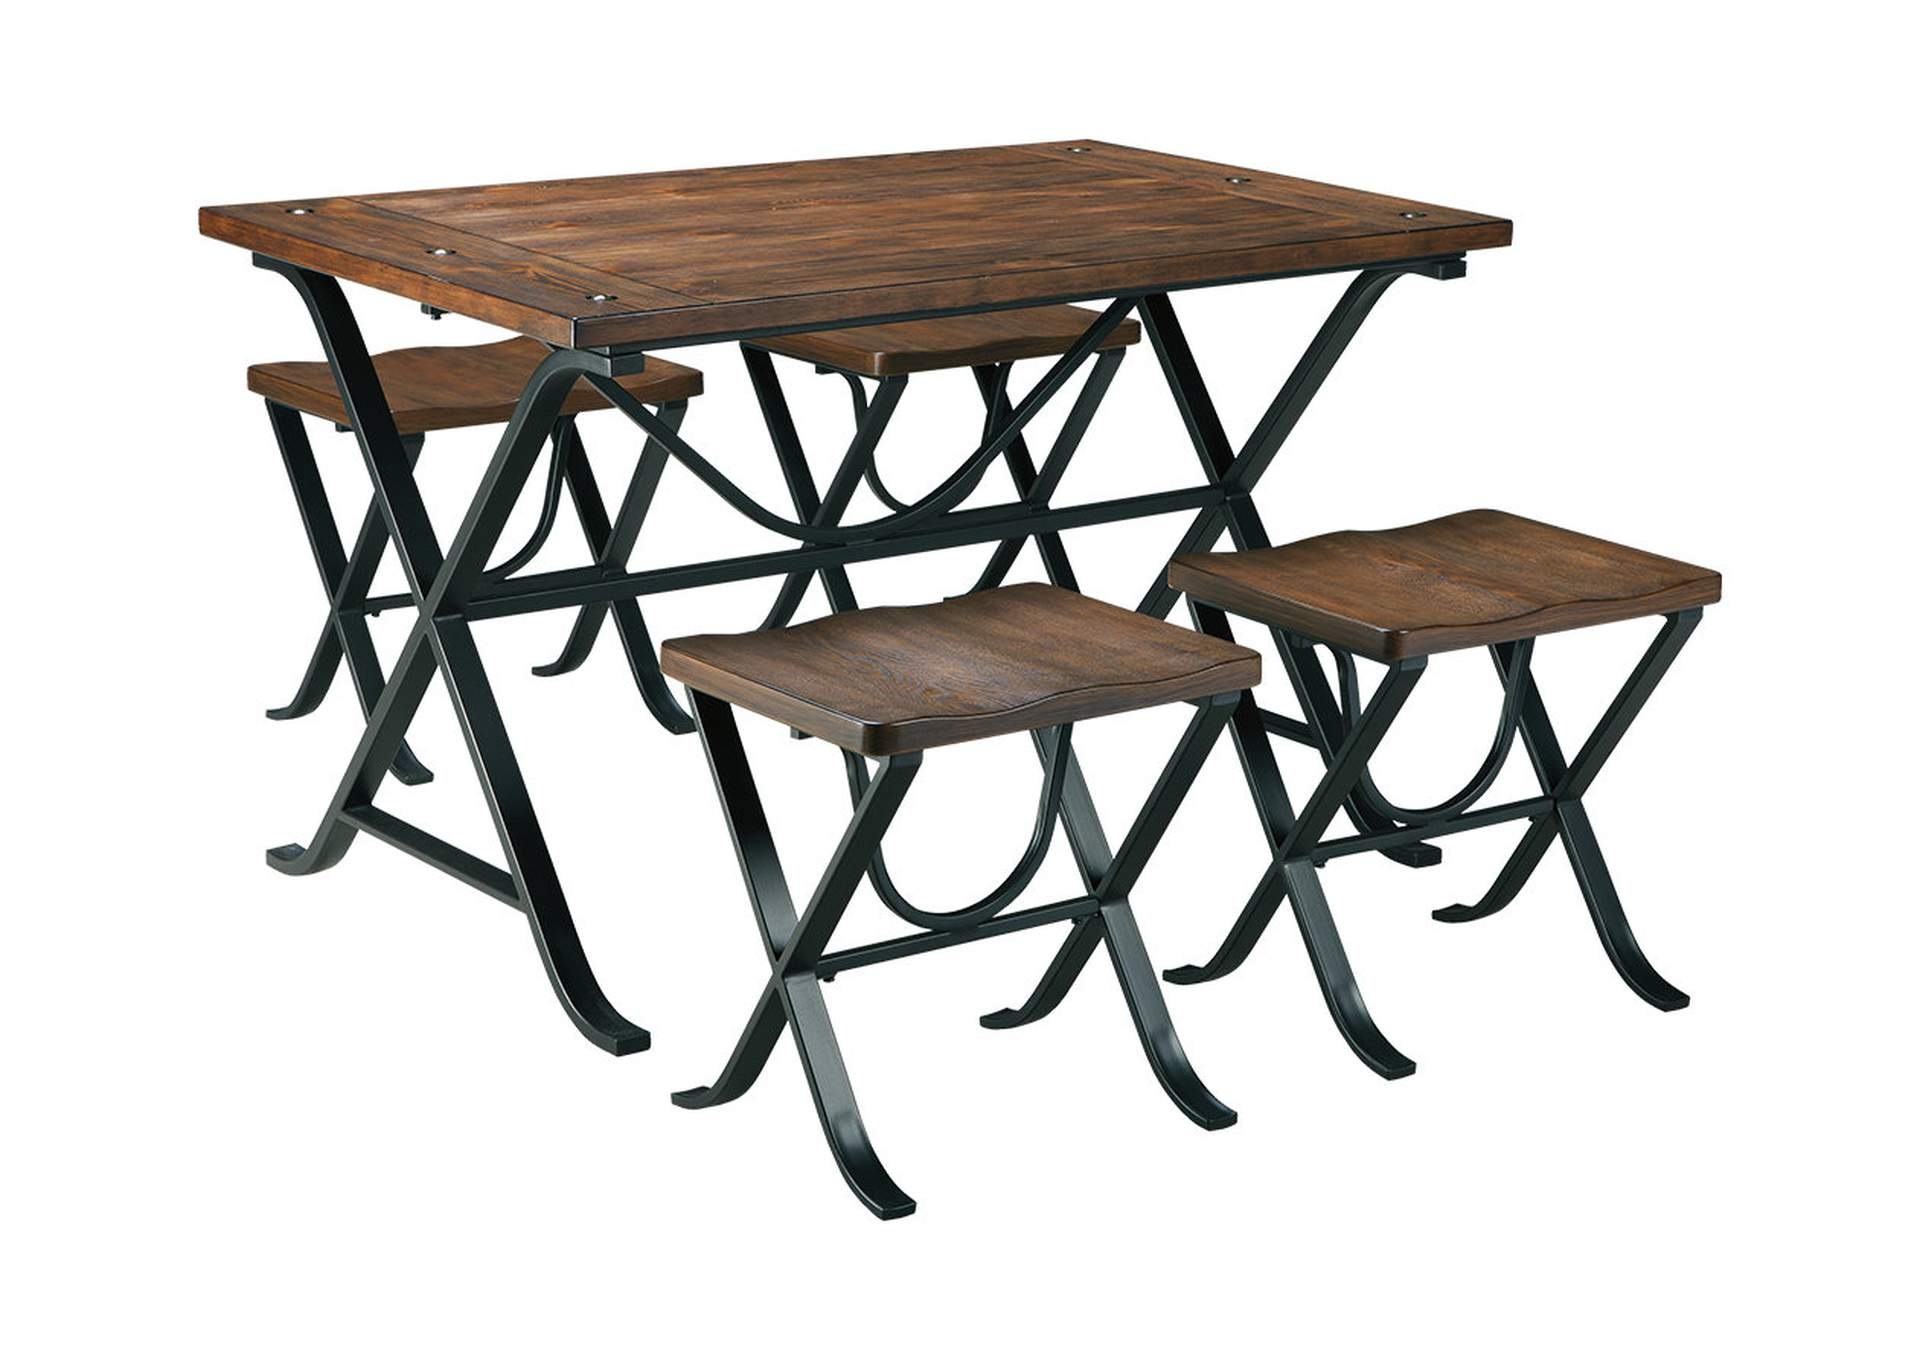 Freimore Rectangular Dining Table w/ 4 Stools,Signature Design By Ashley